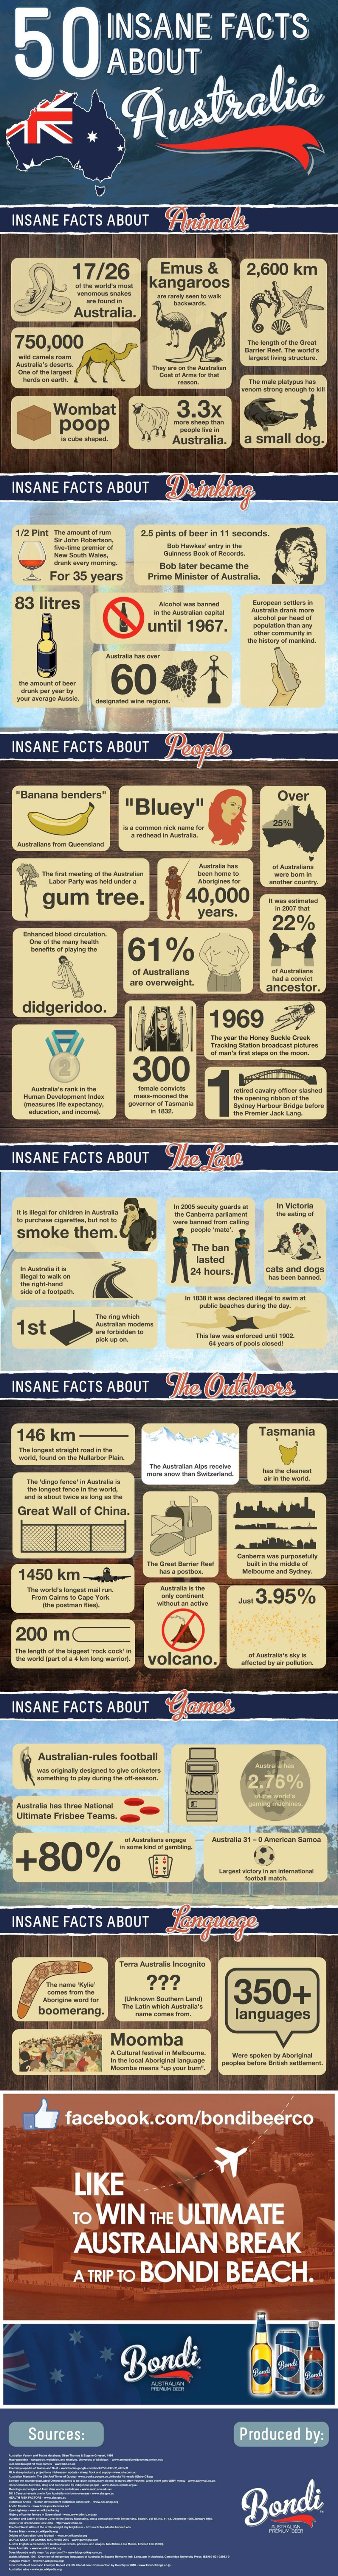 50 Insane Facts About Australia Infographic